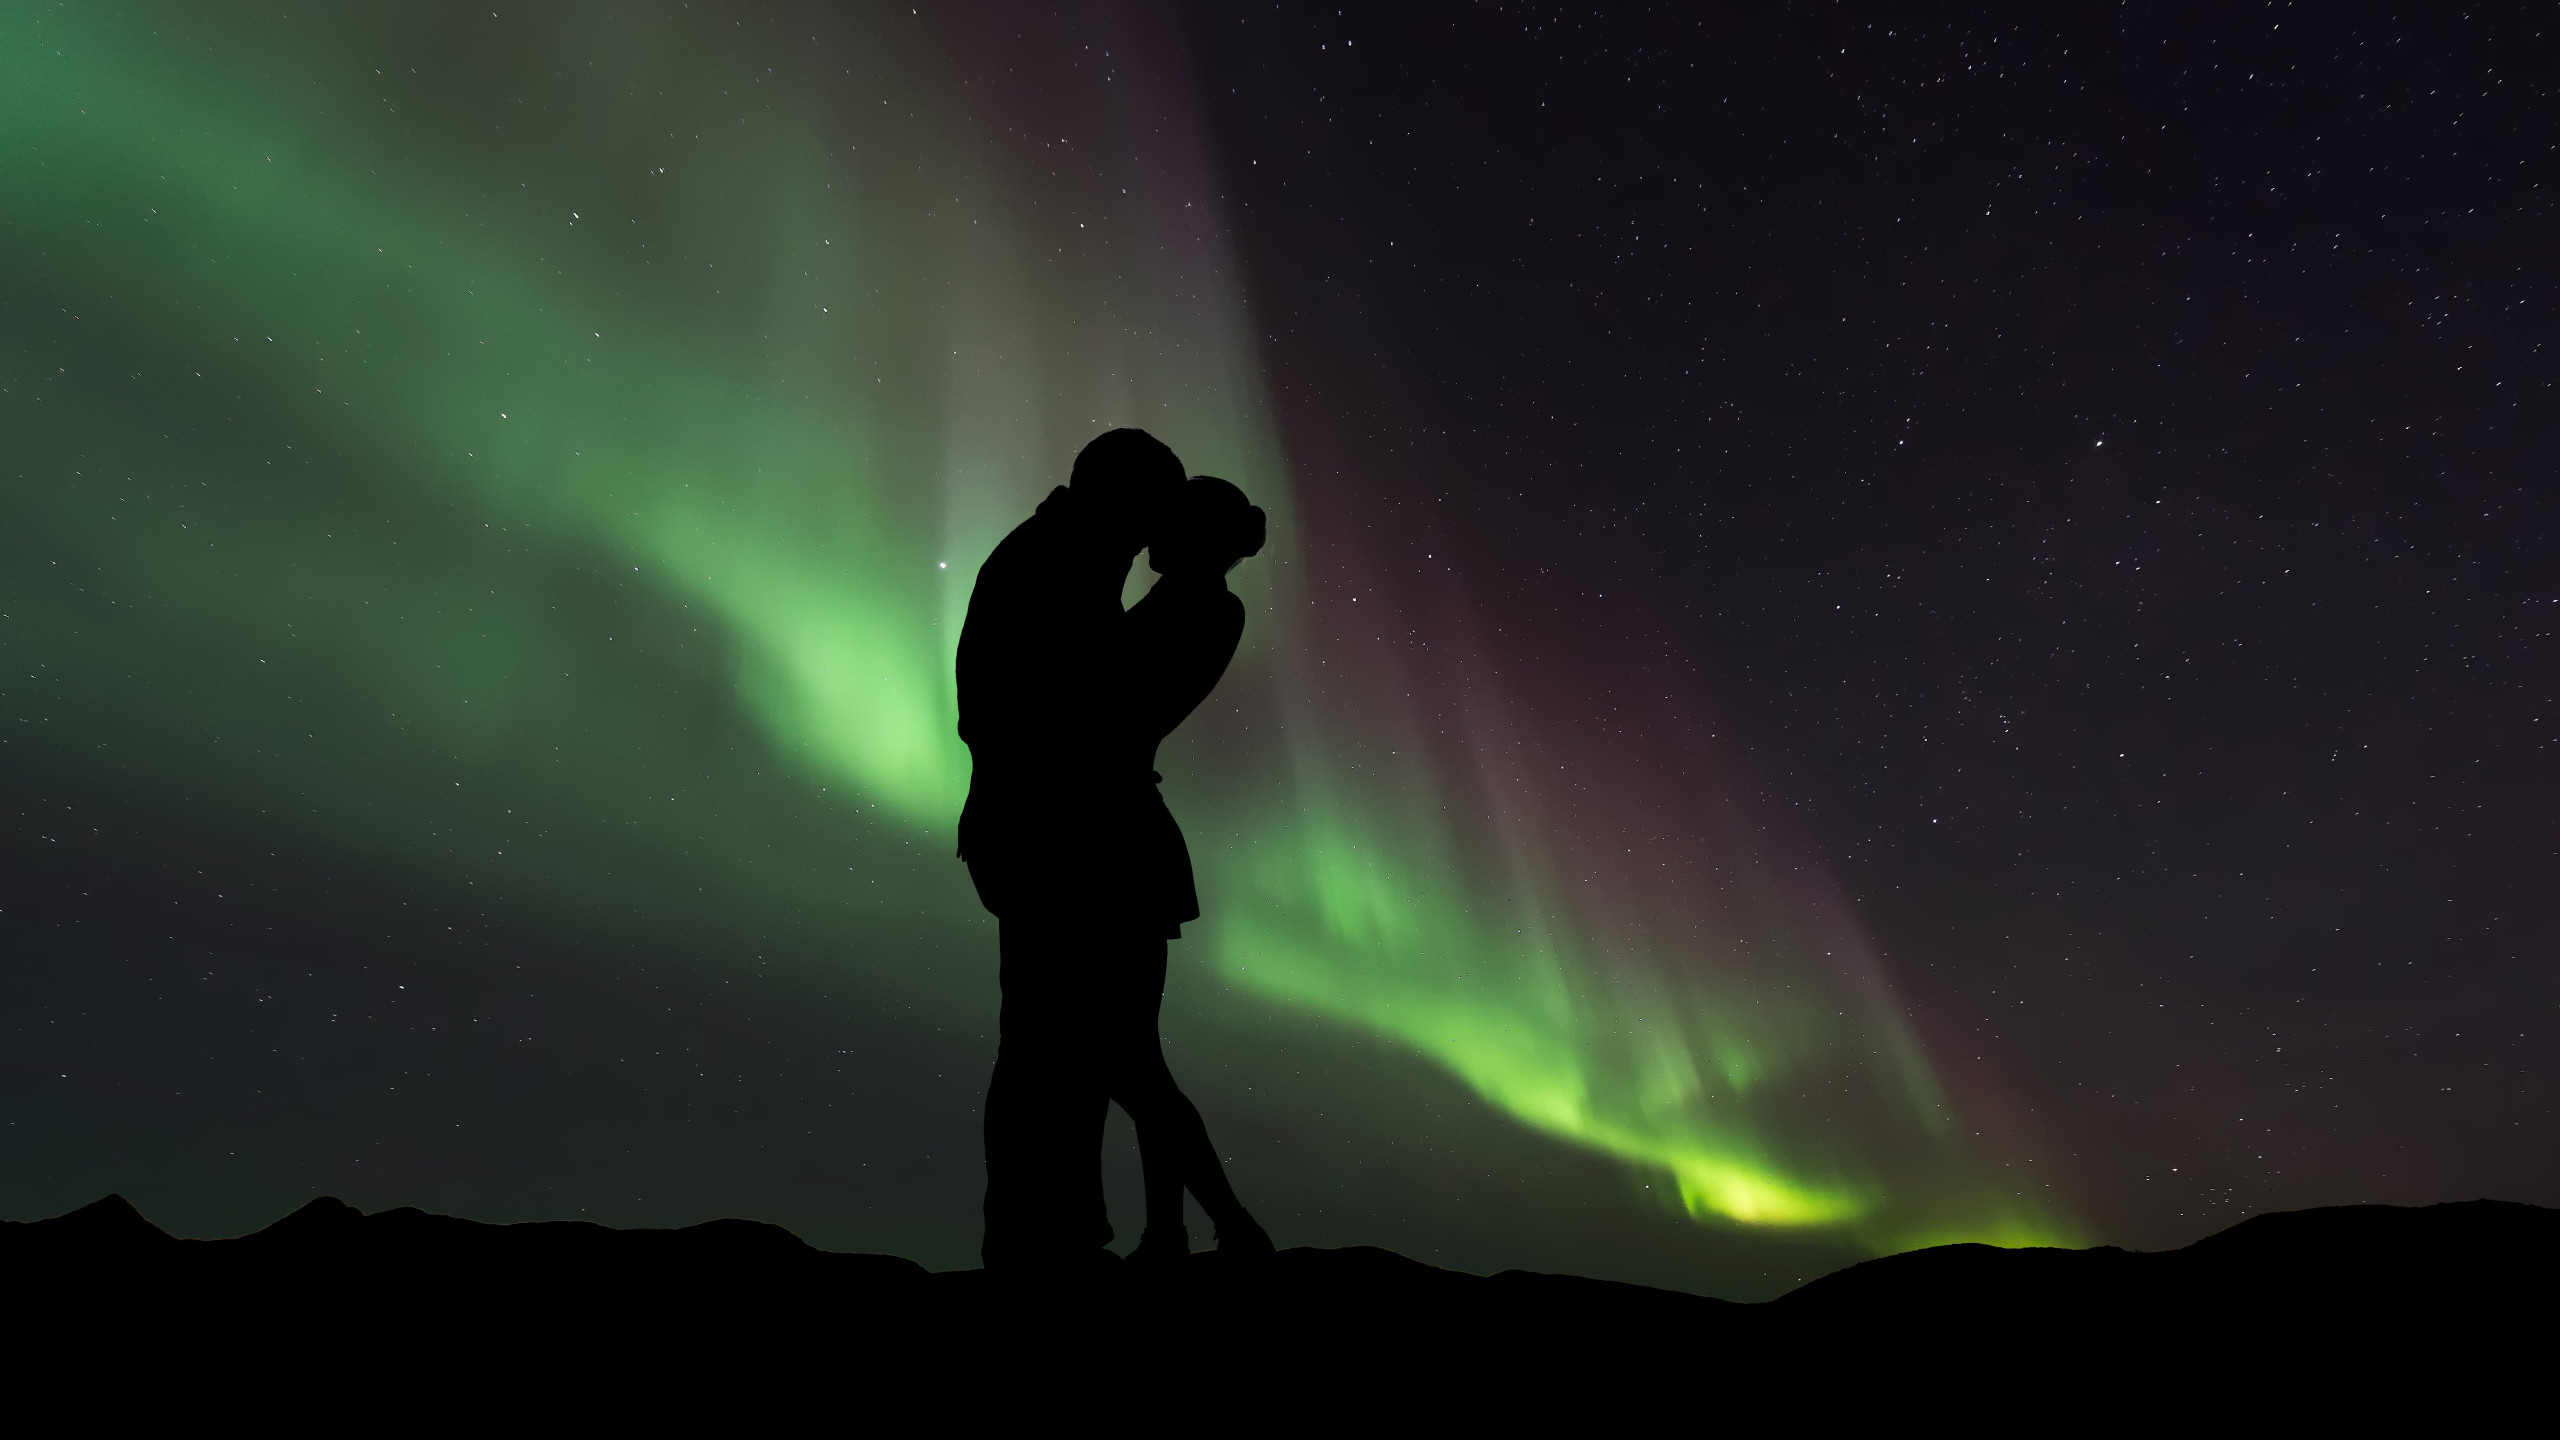 Couple in love under the Northern Lights wallpaper 2560x1440